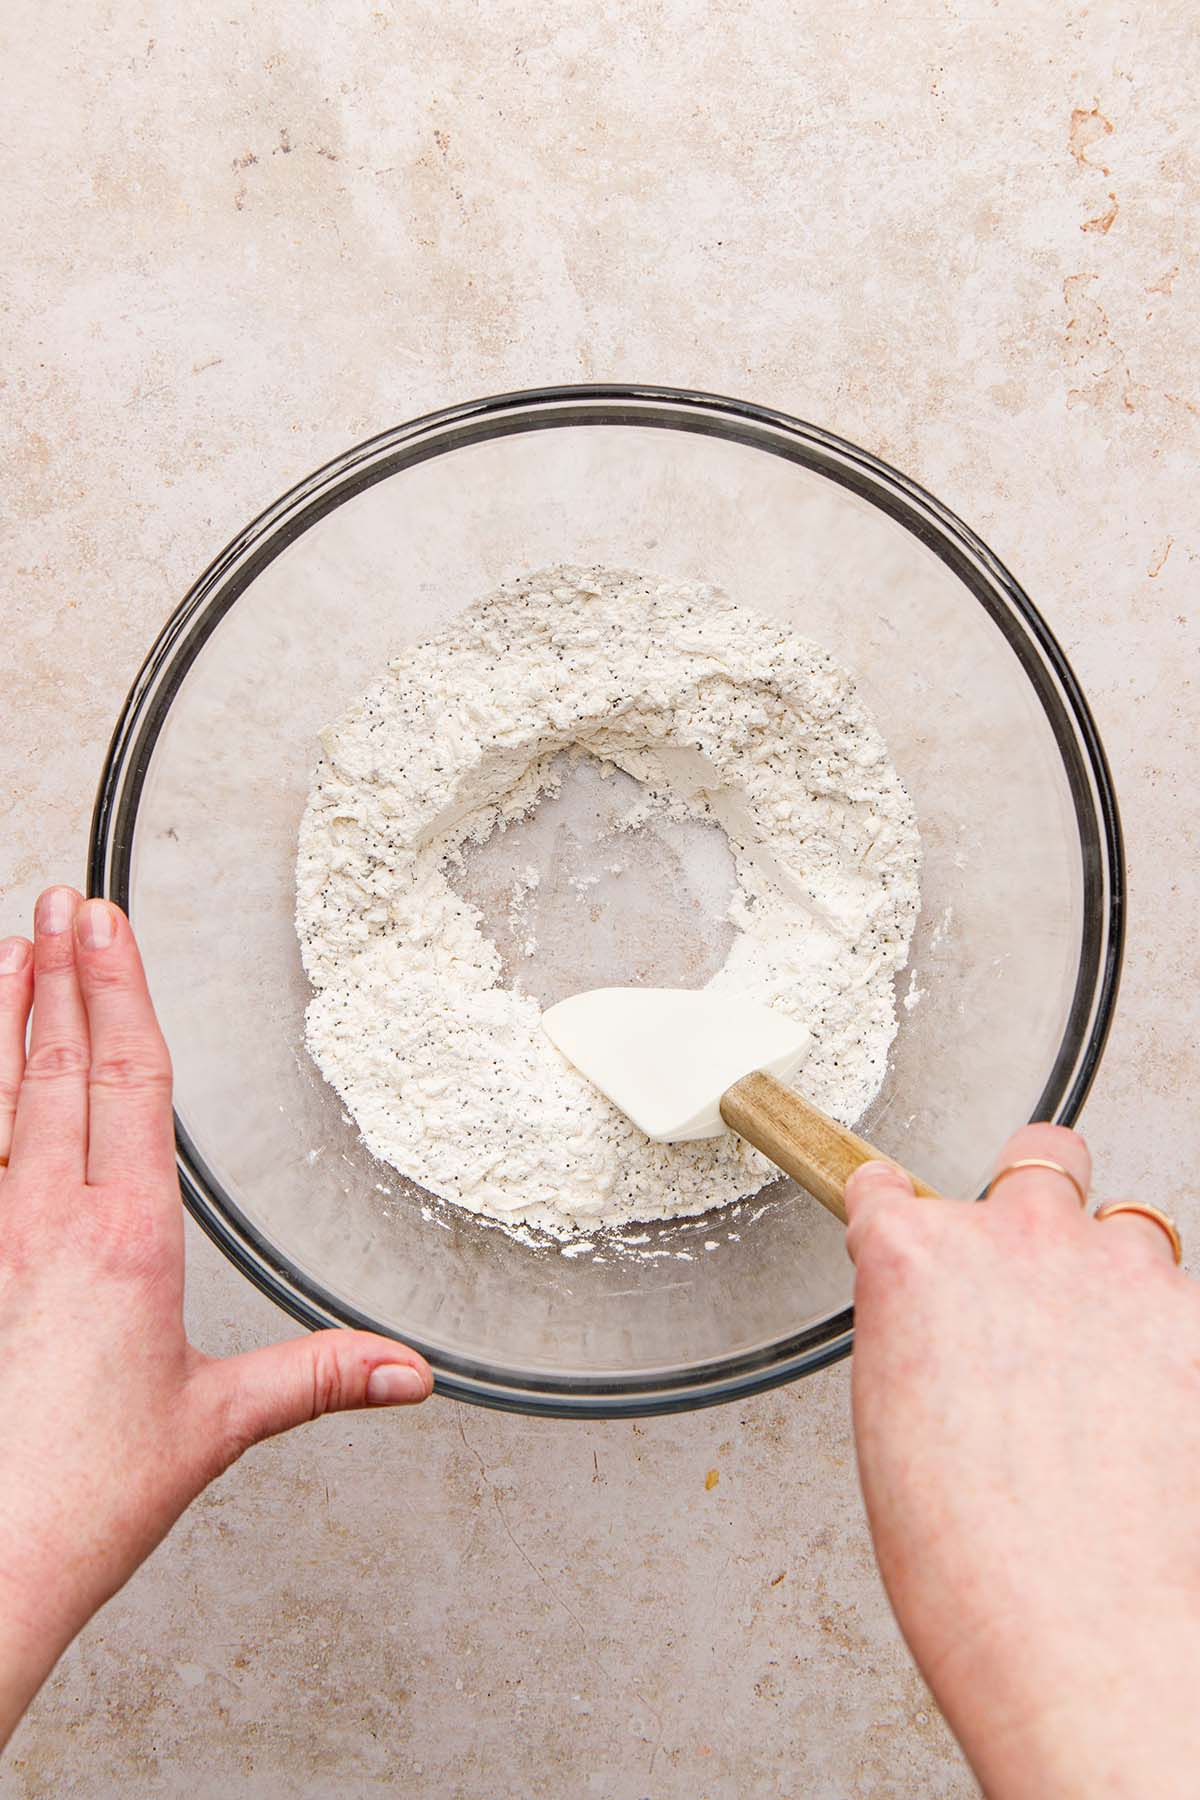 A hand using a rubber spatula to make a well in the middle of a bowl of flour.